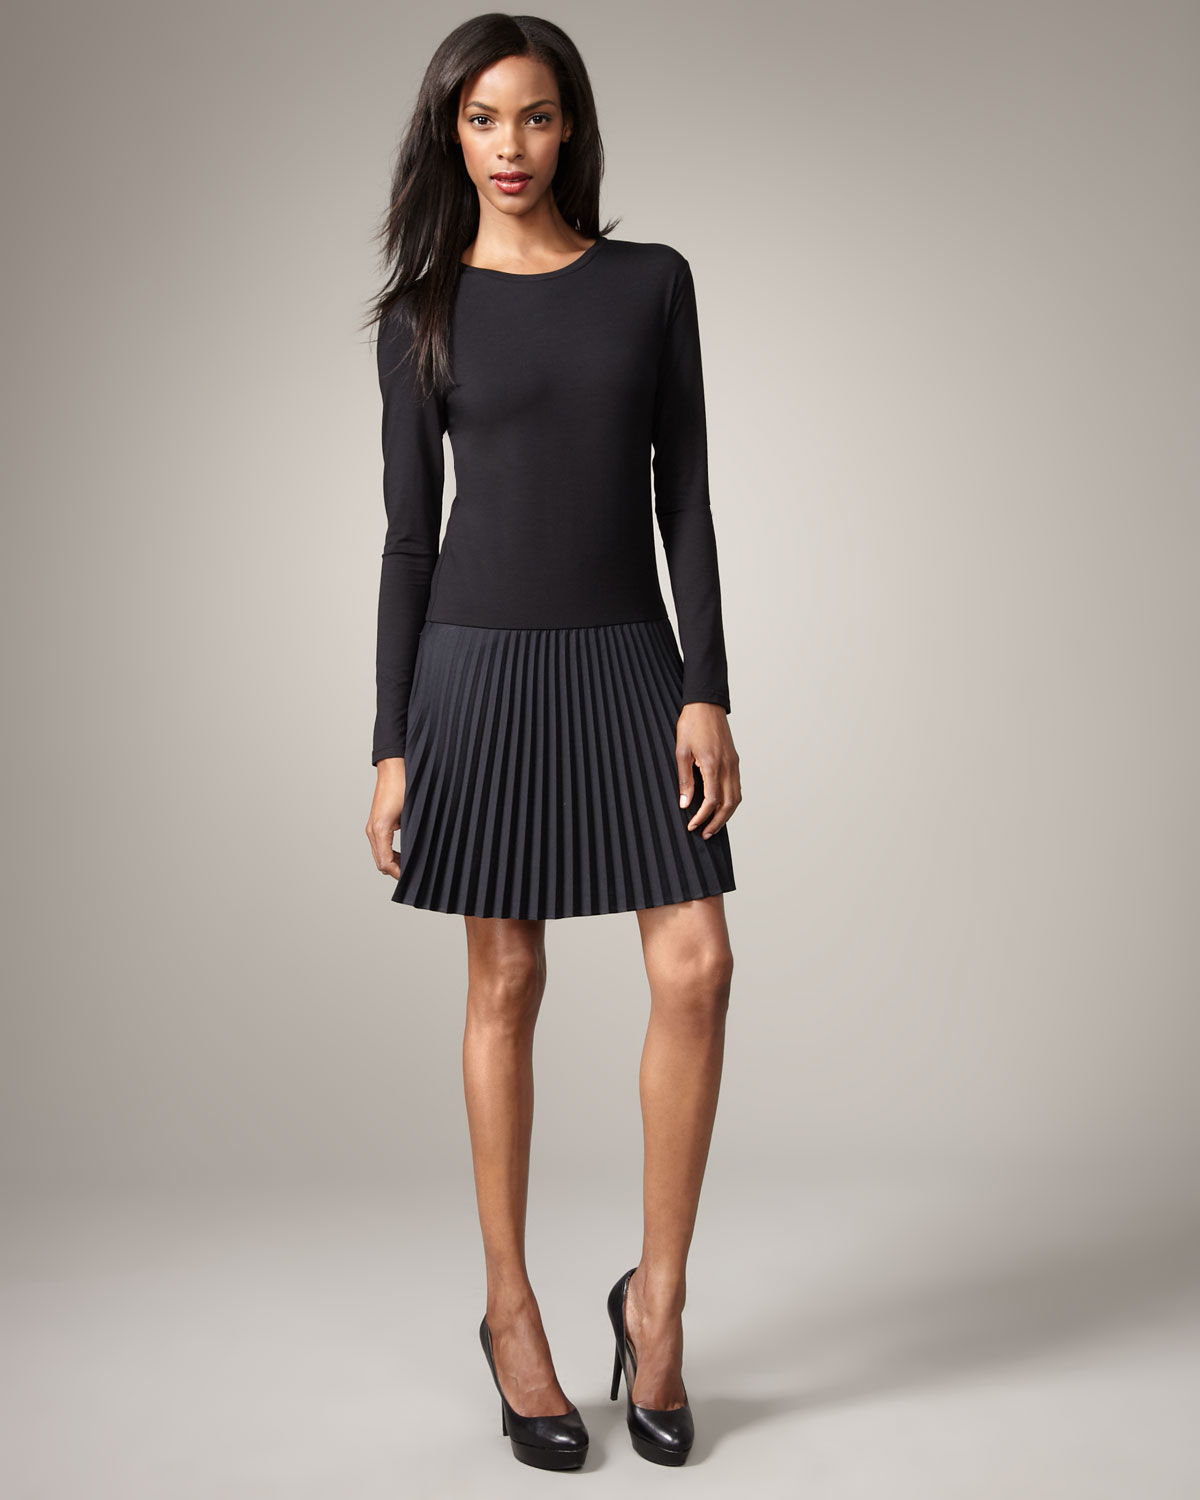 Dkny Pleated-skirt Dress in Black | Lyst